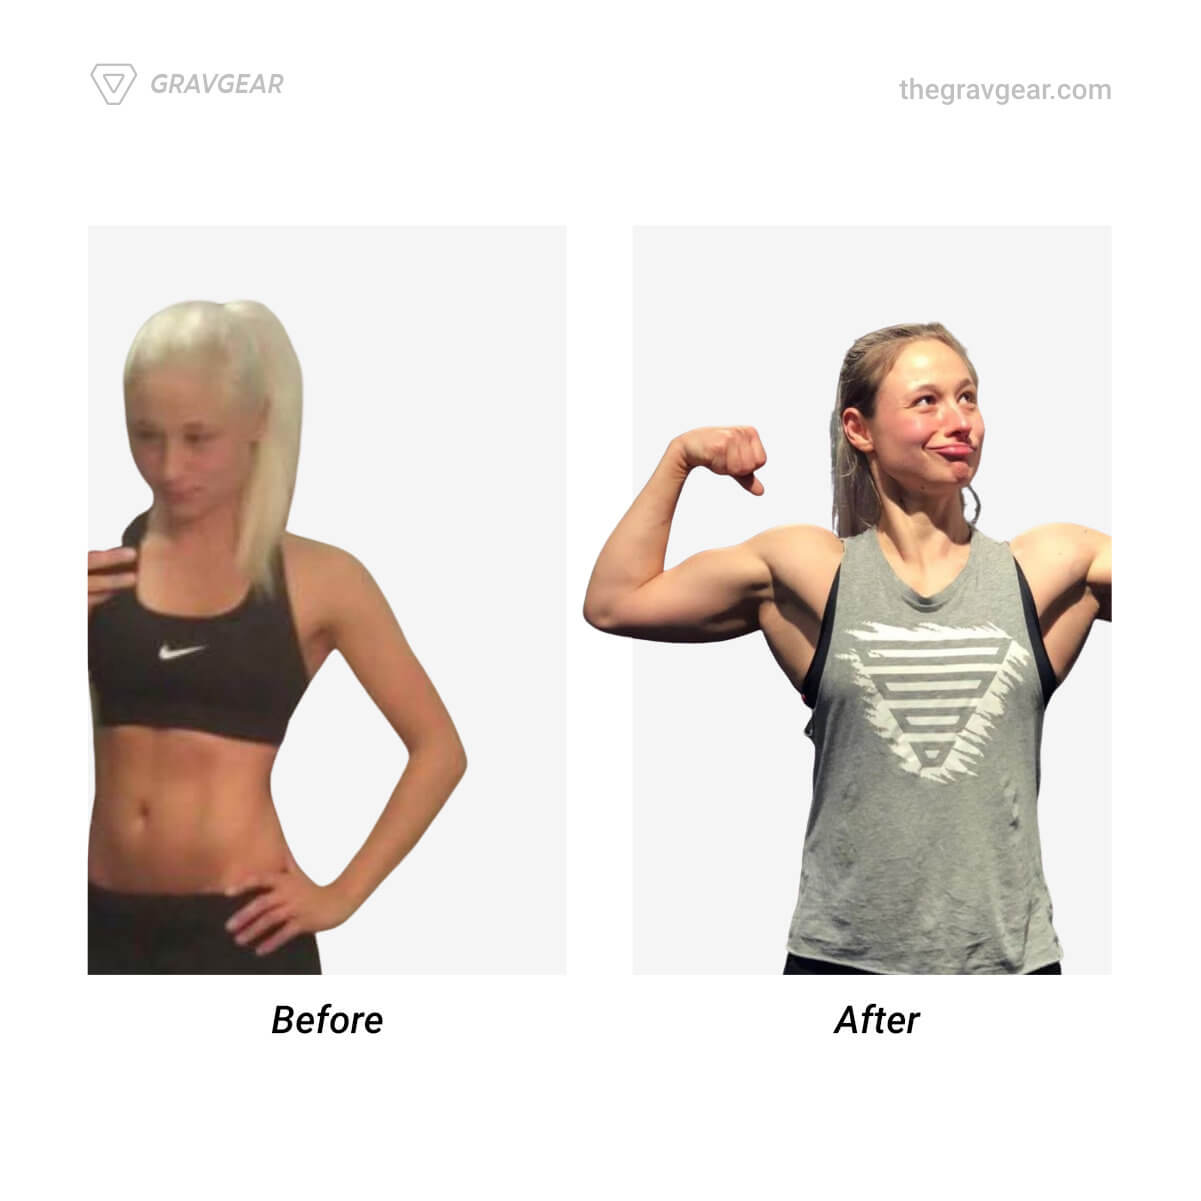 female calisthenics body transformation before and after